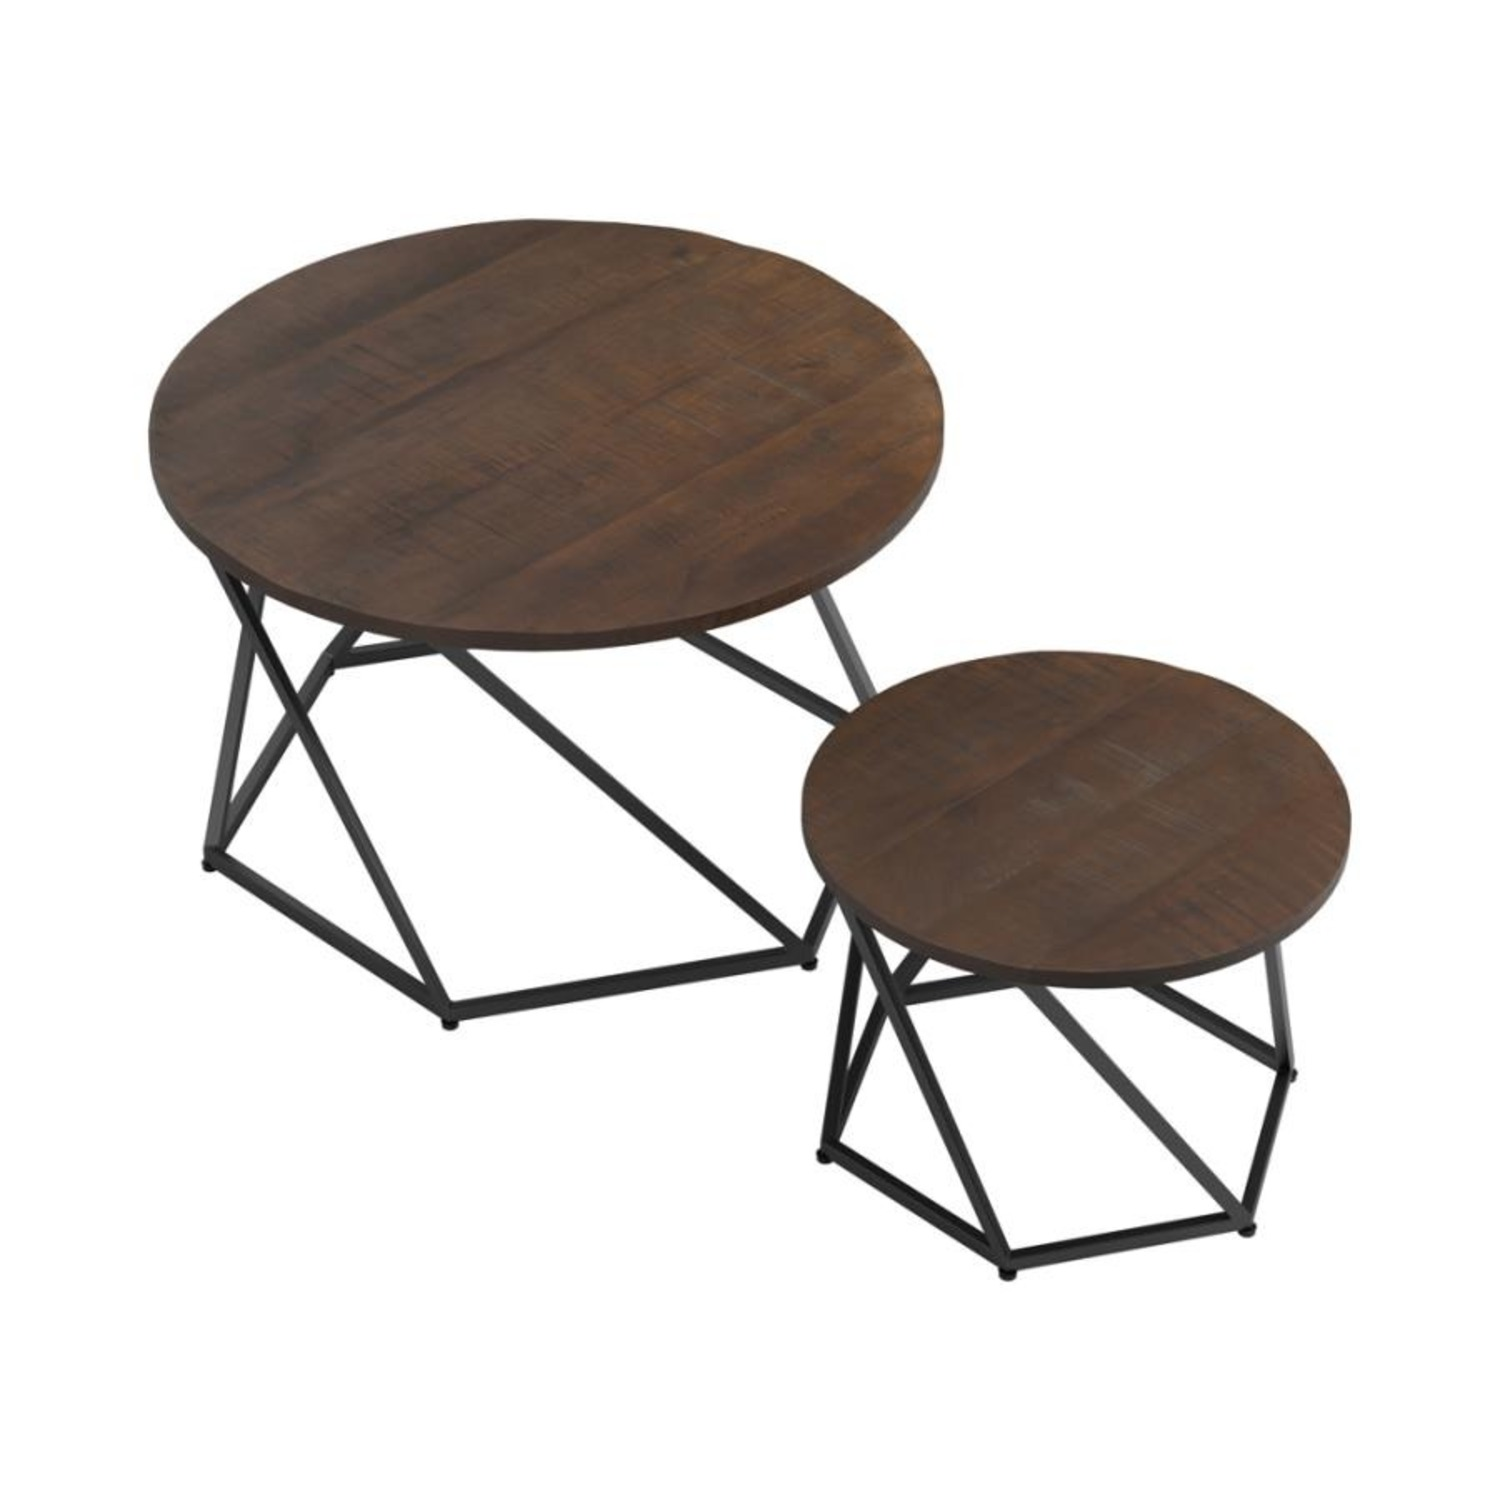 Nesting Table In Natural & Matte Black Finish - image-3